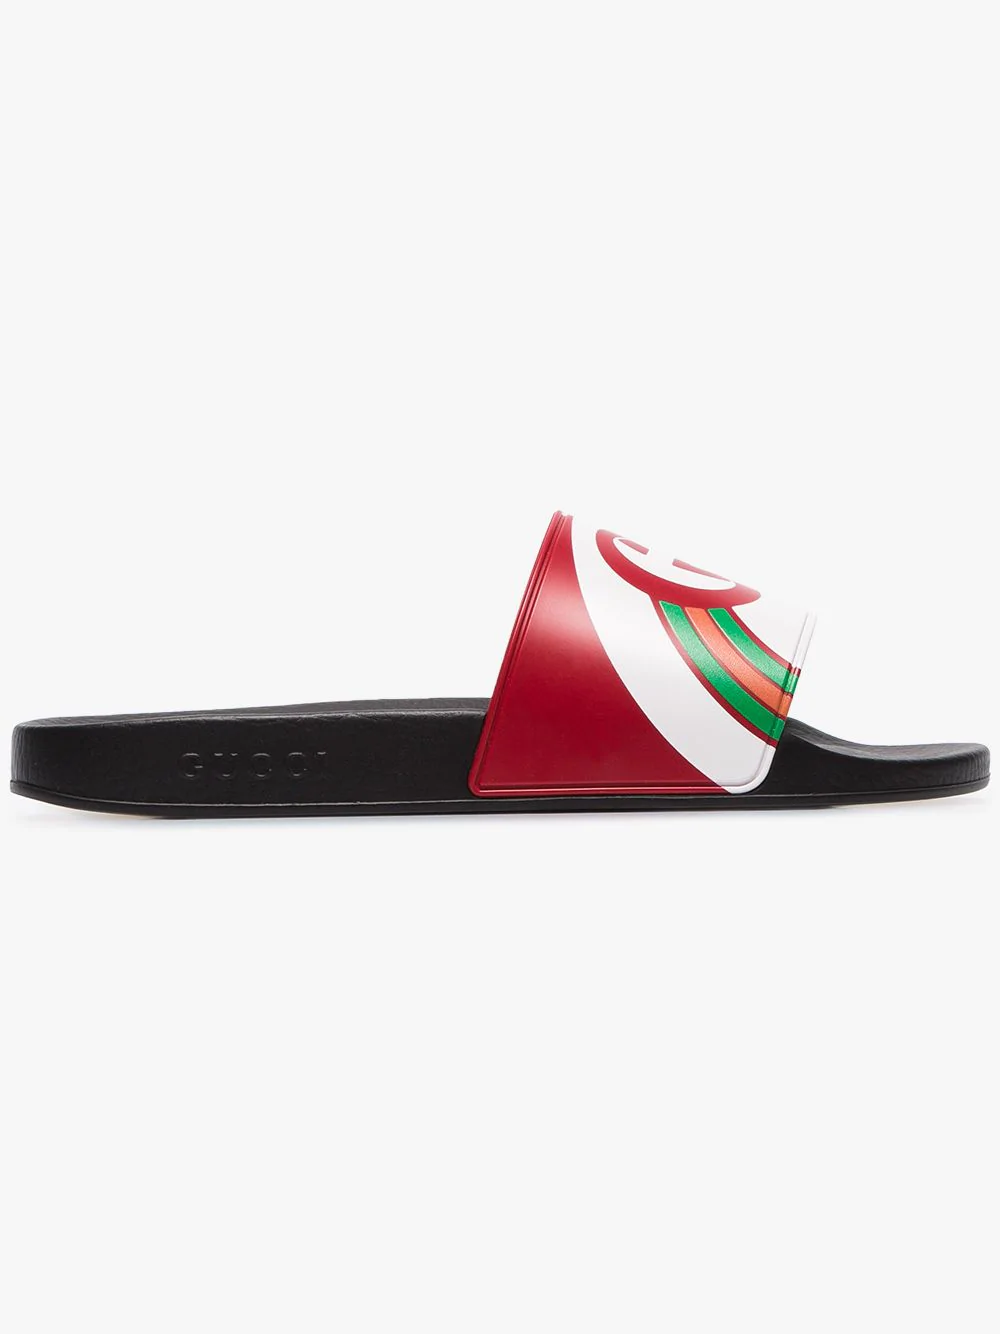 8b4be721891a Gucci Men s Interlocking G Rainbow Rubber Slide Sandals In Red ...